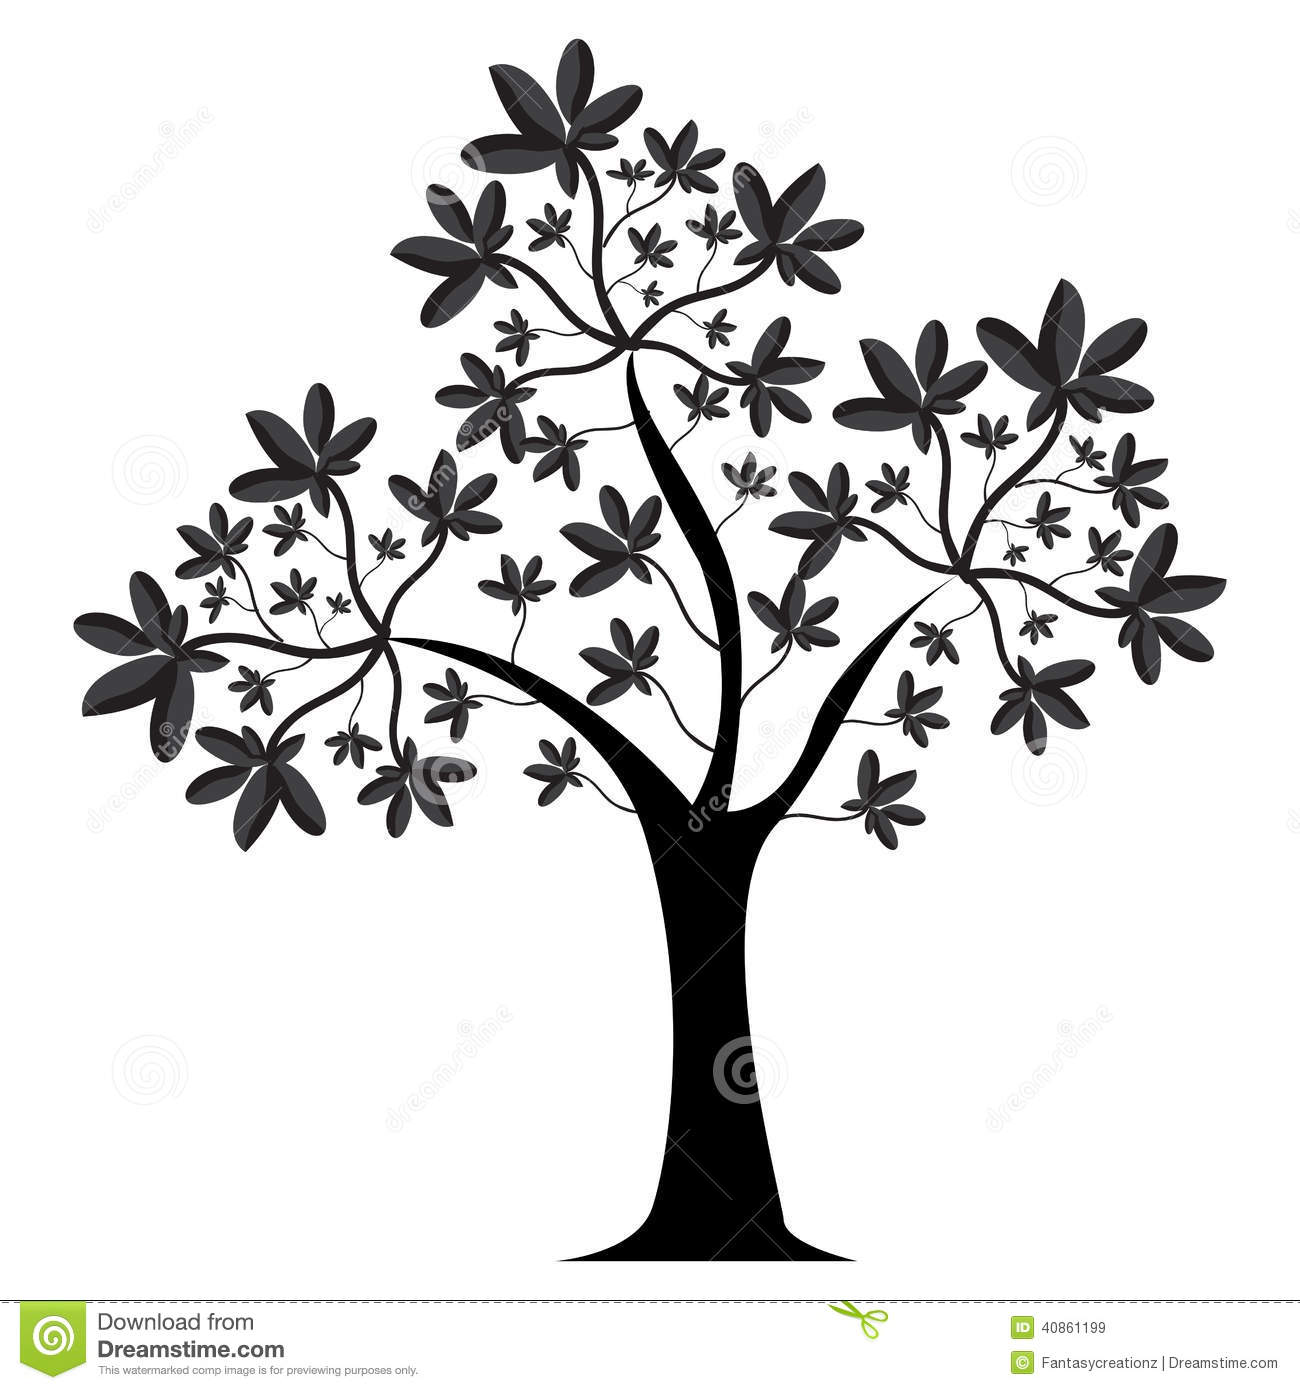 tree silhouette stock vector illustration of simple